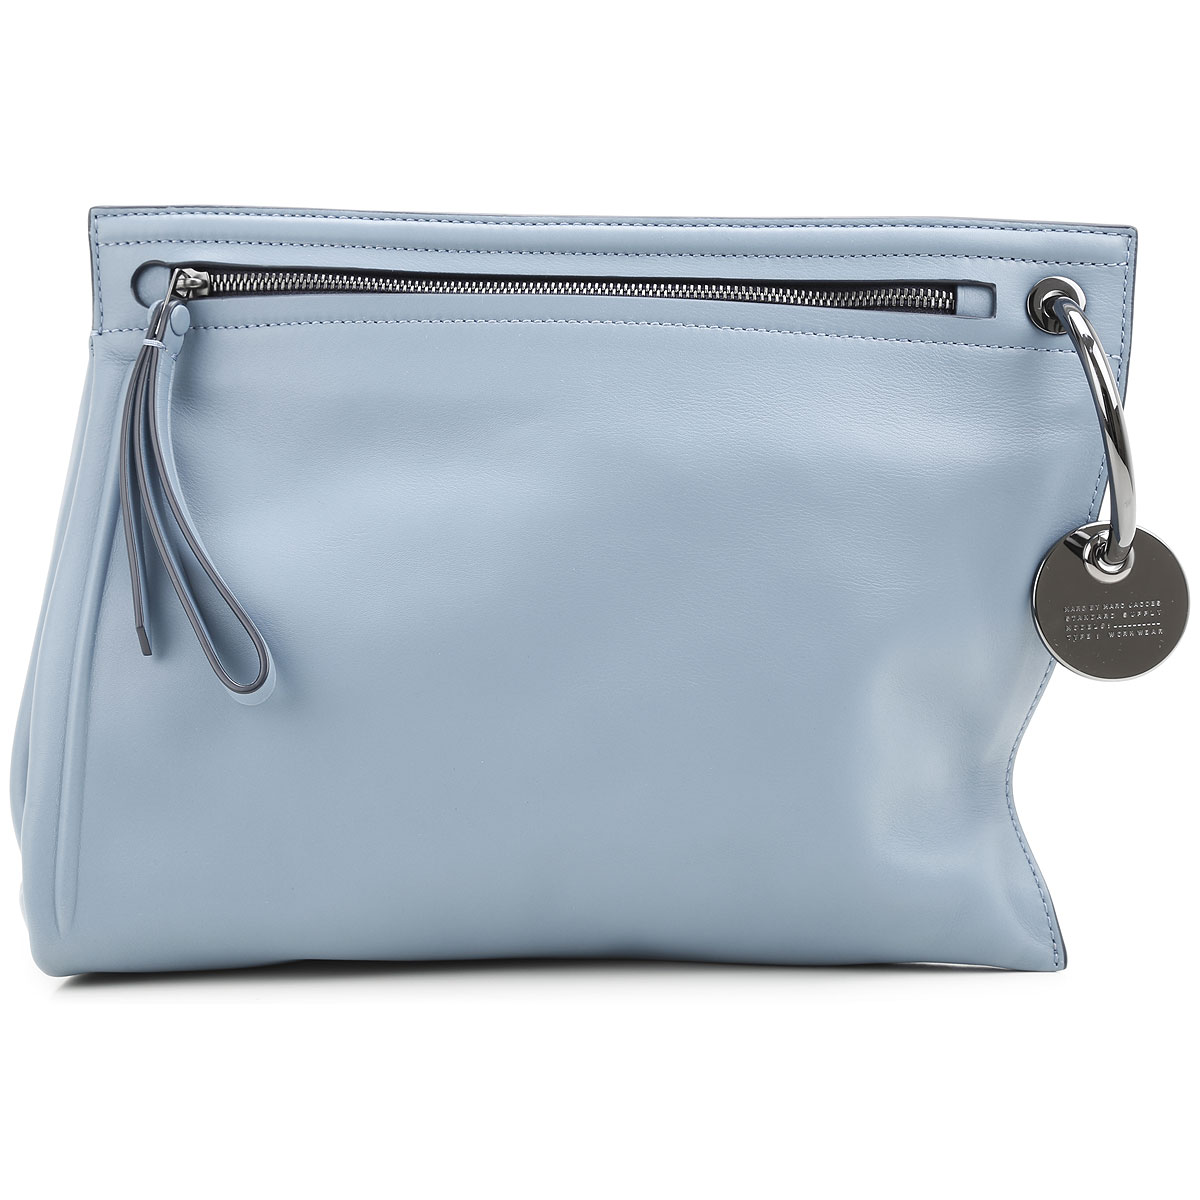 Marc Jacobs Clutch Bag On Sale, Azure, Leather, 2019